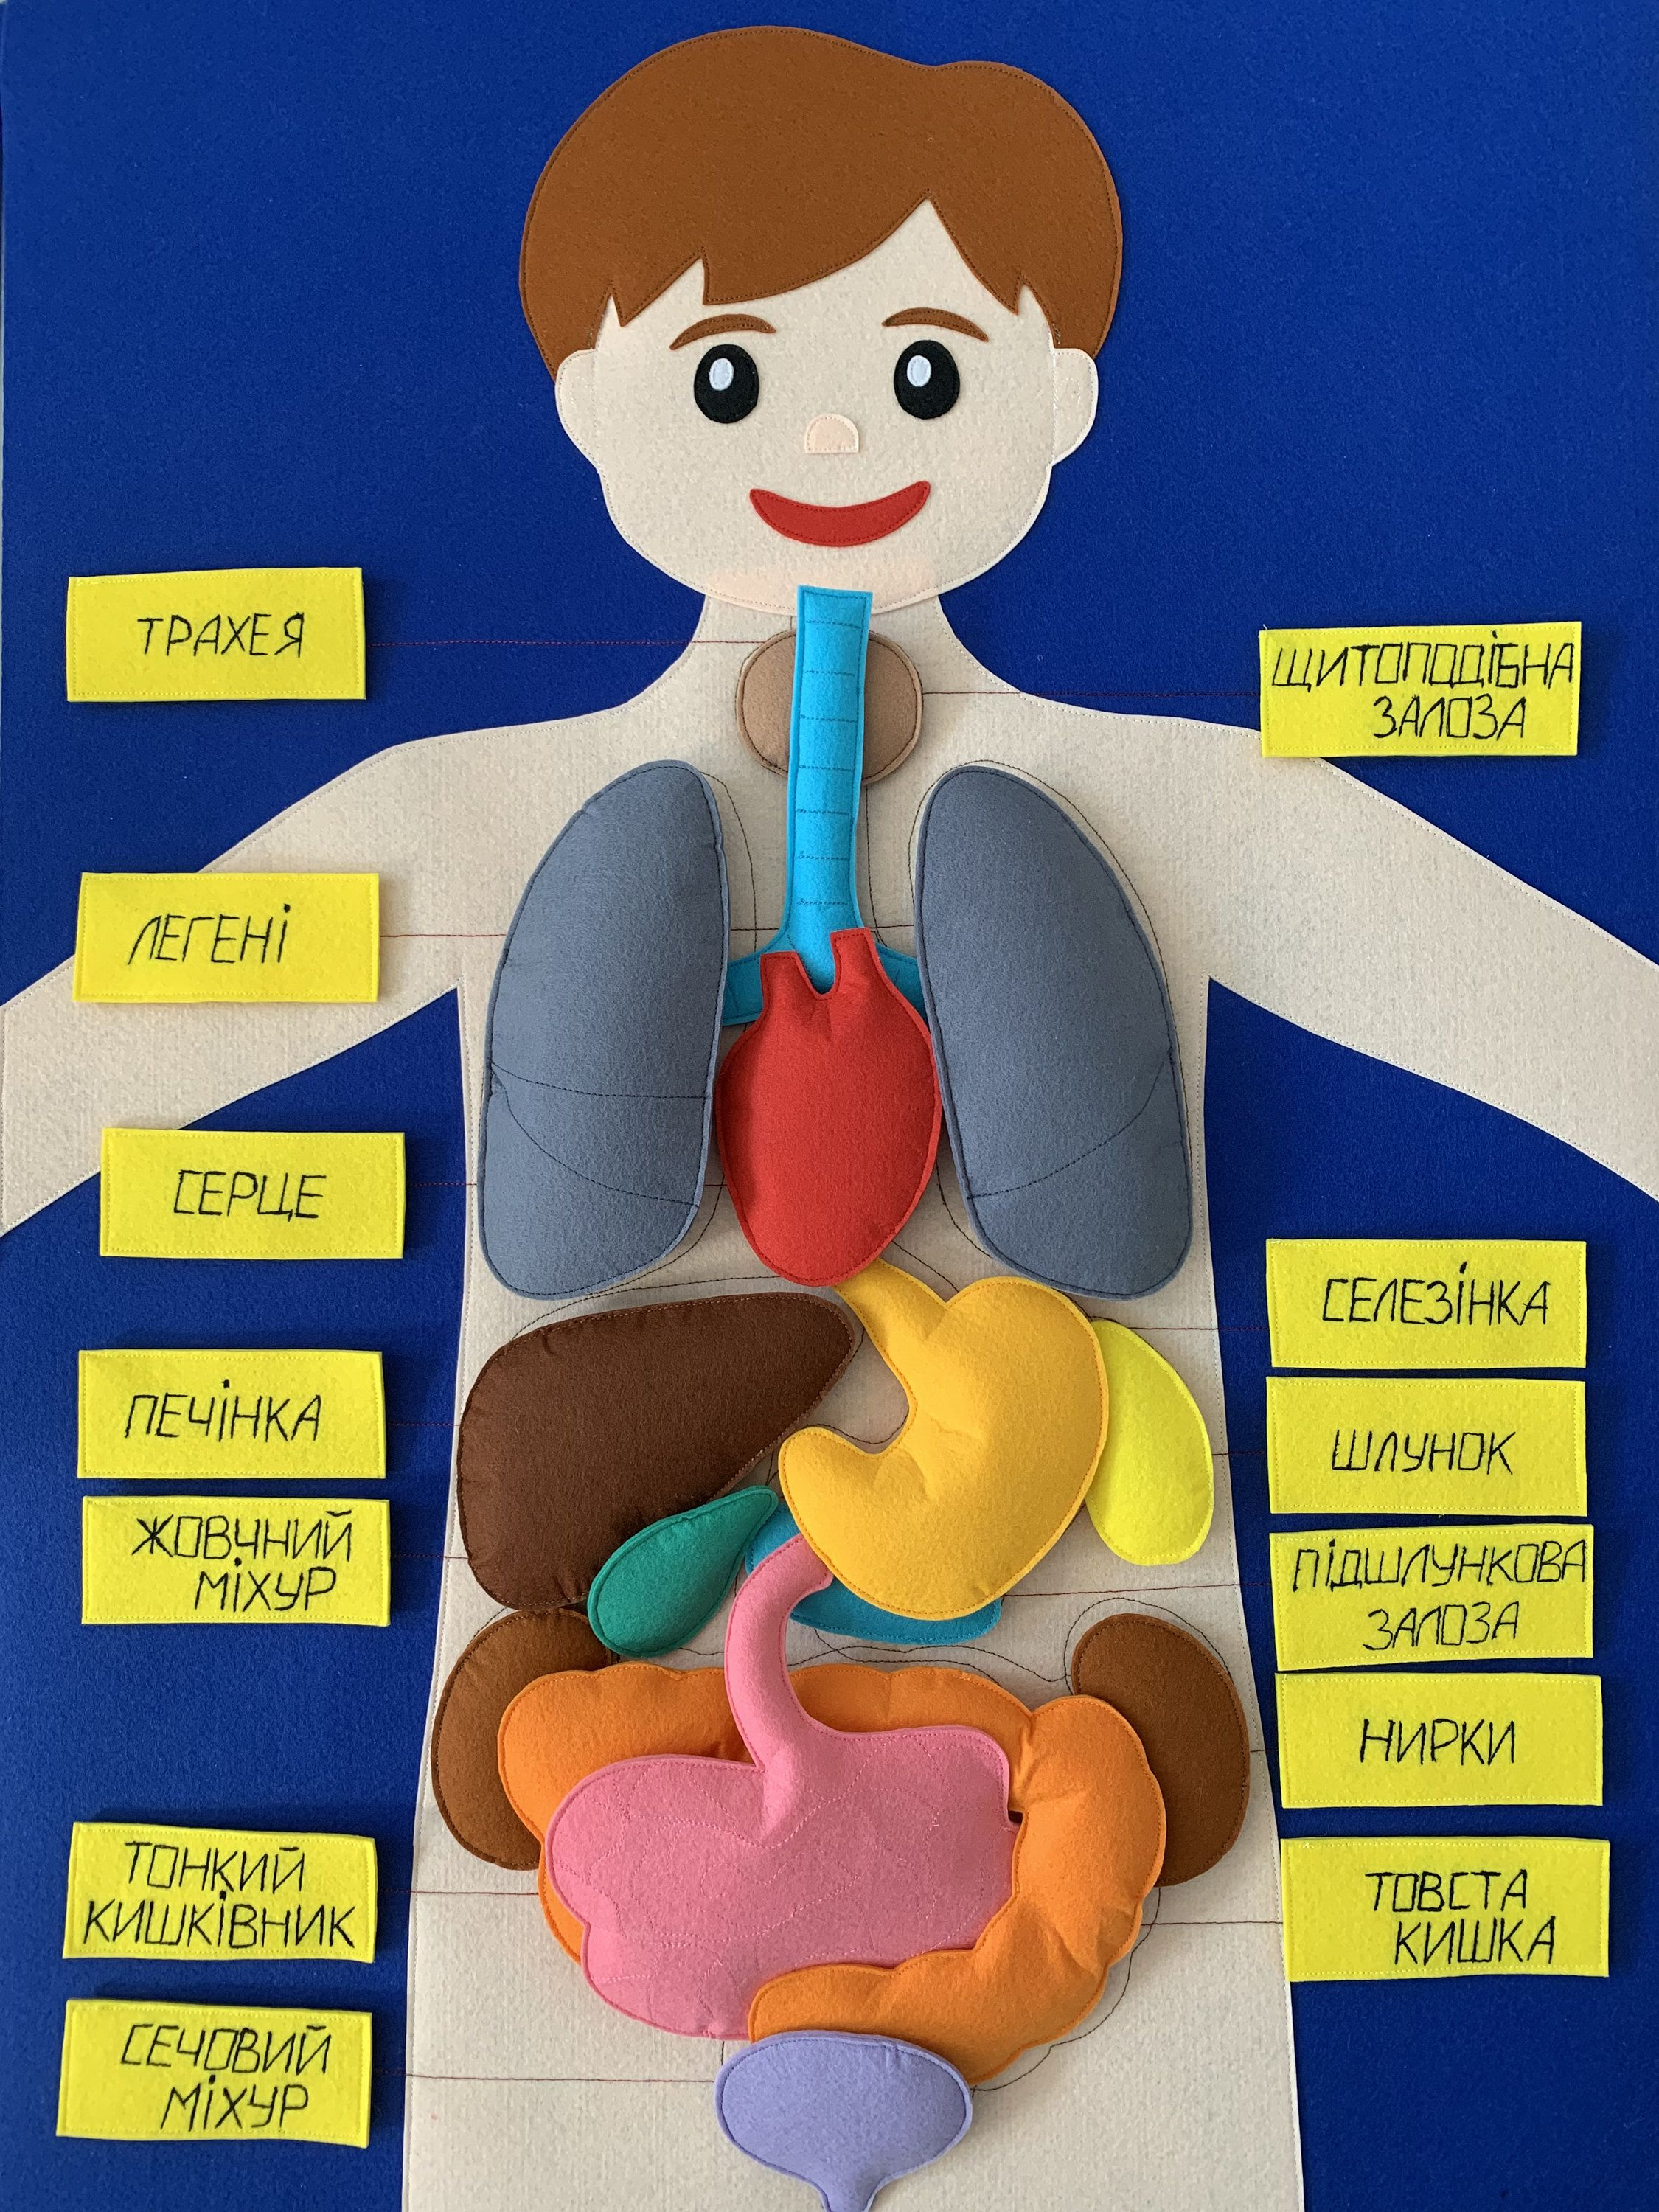 Felt Human Body Board Anatomy Materials Science Playmate Etsy In 2021 Art Activities For Kids Human Body Unit Study Art For Kids [ 3000 x 2250 Pixel ]